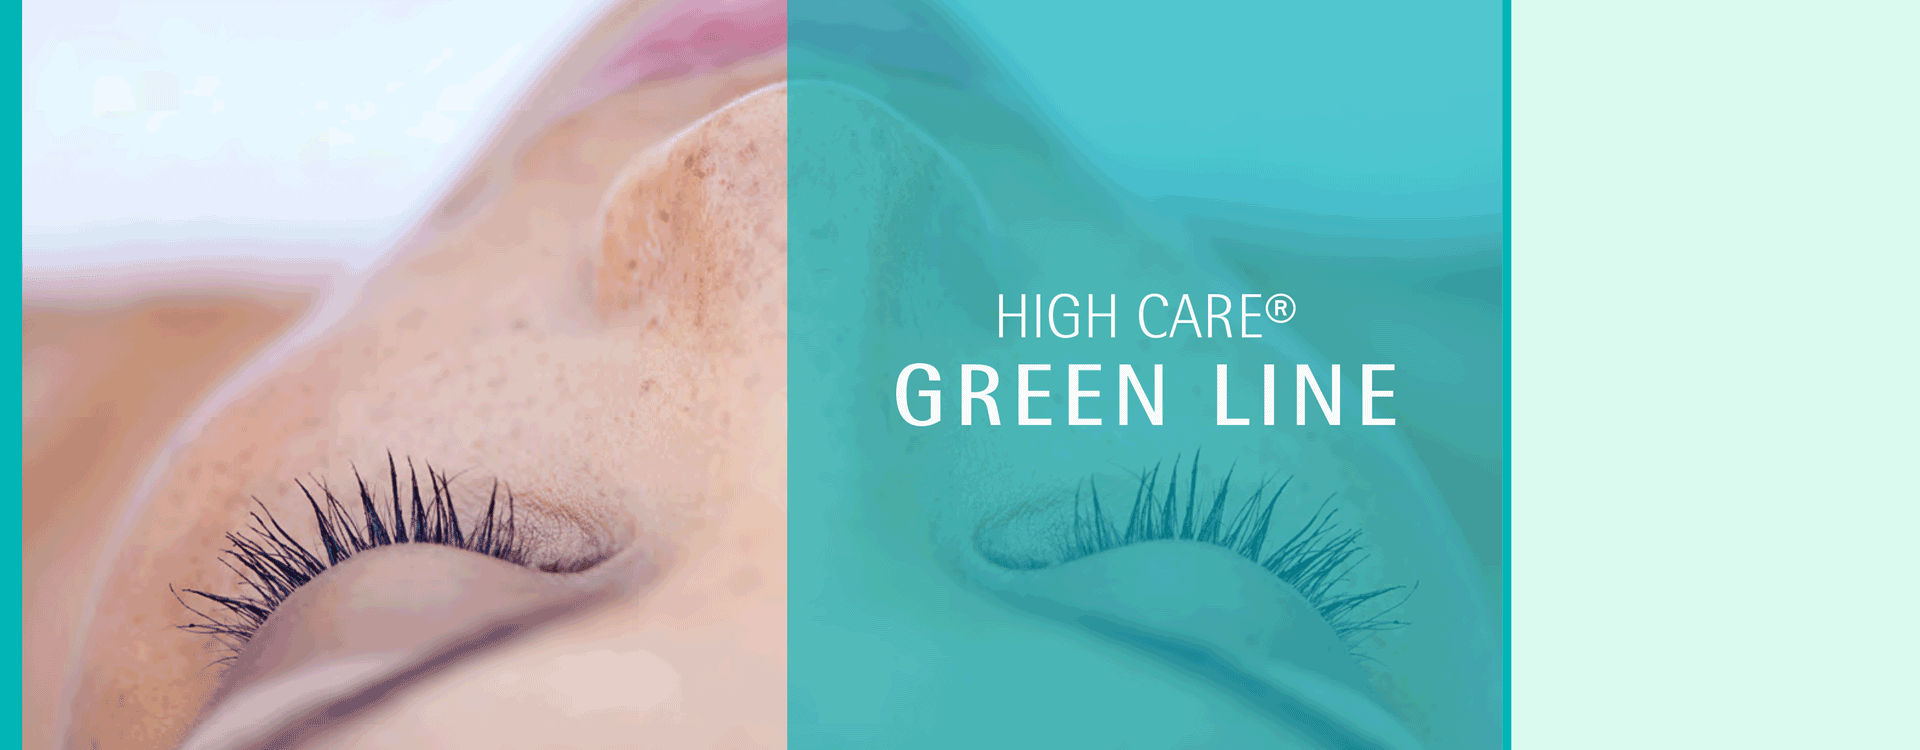 Green Line - Basic Facial Care